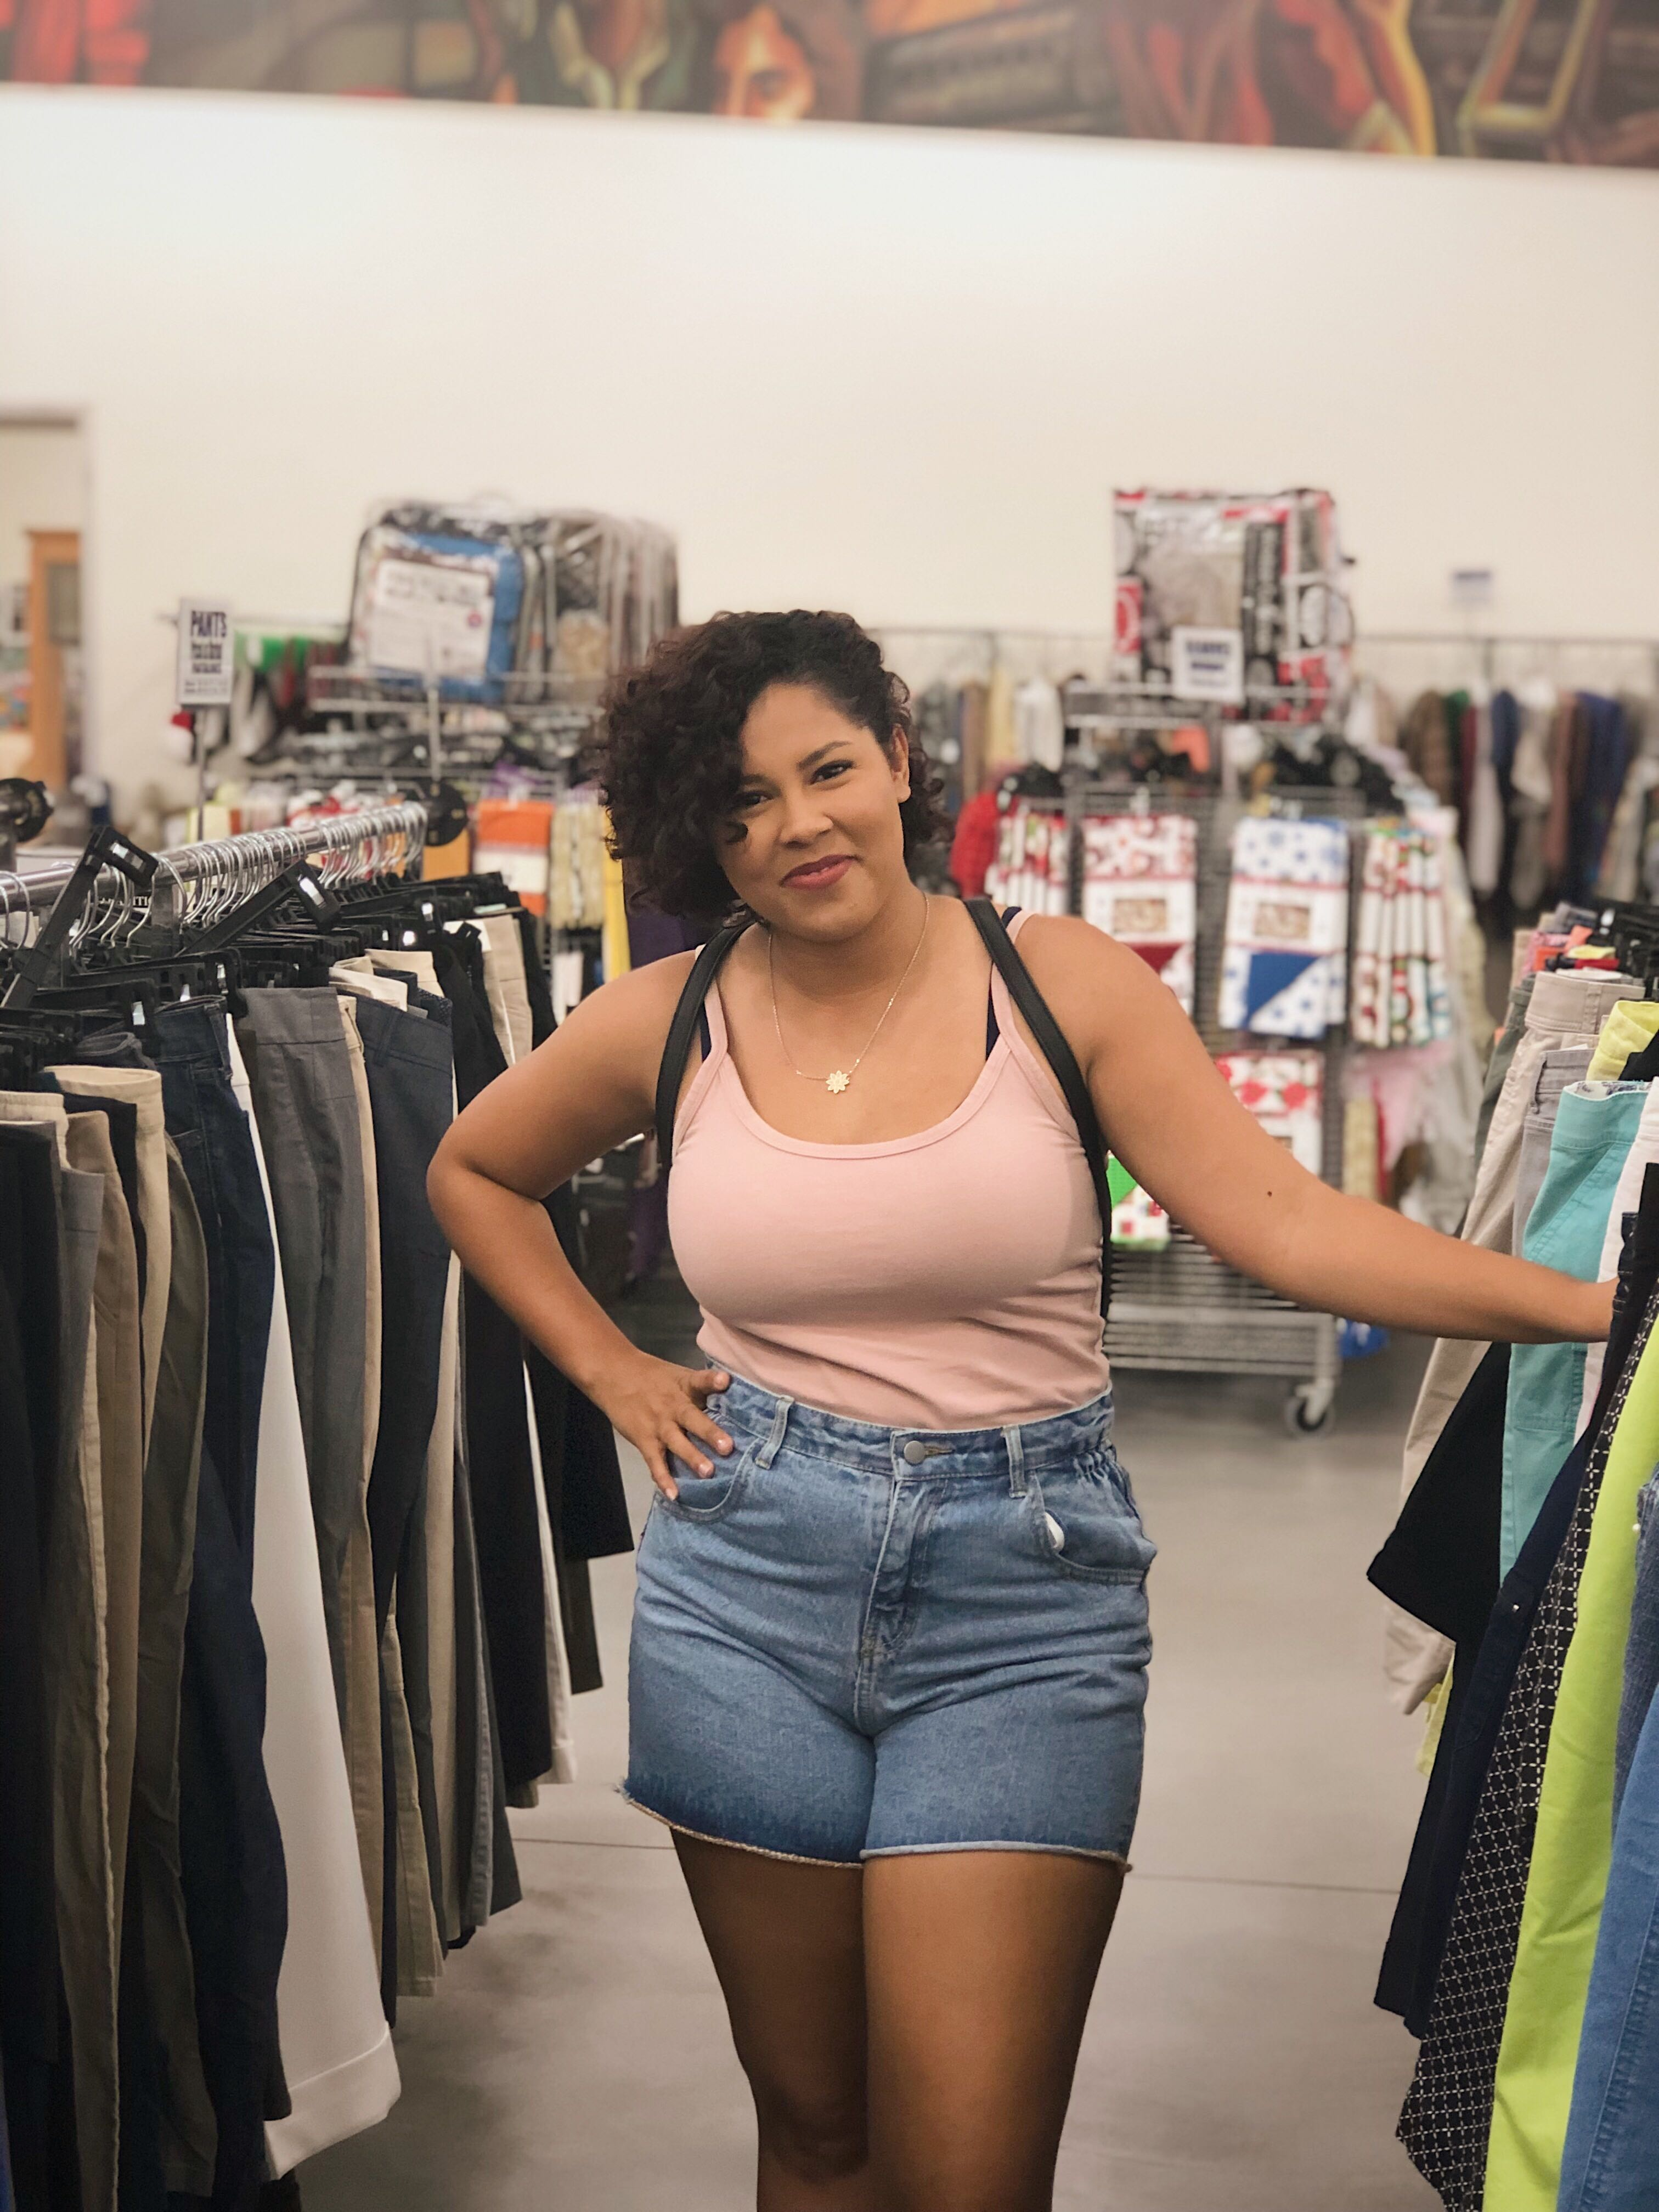 Girl posing between racks in a thrift store smiling in a tan shirt and jean shorts